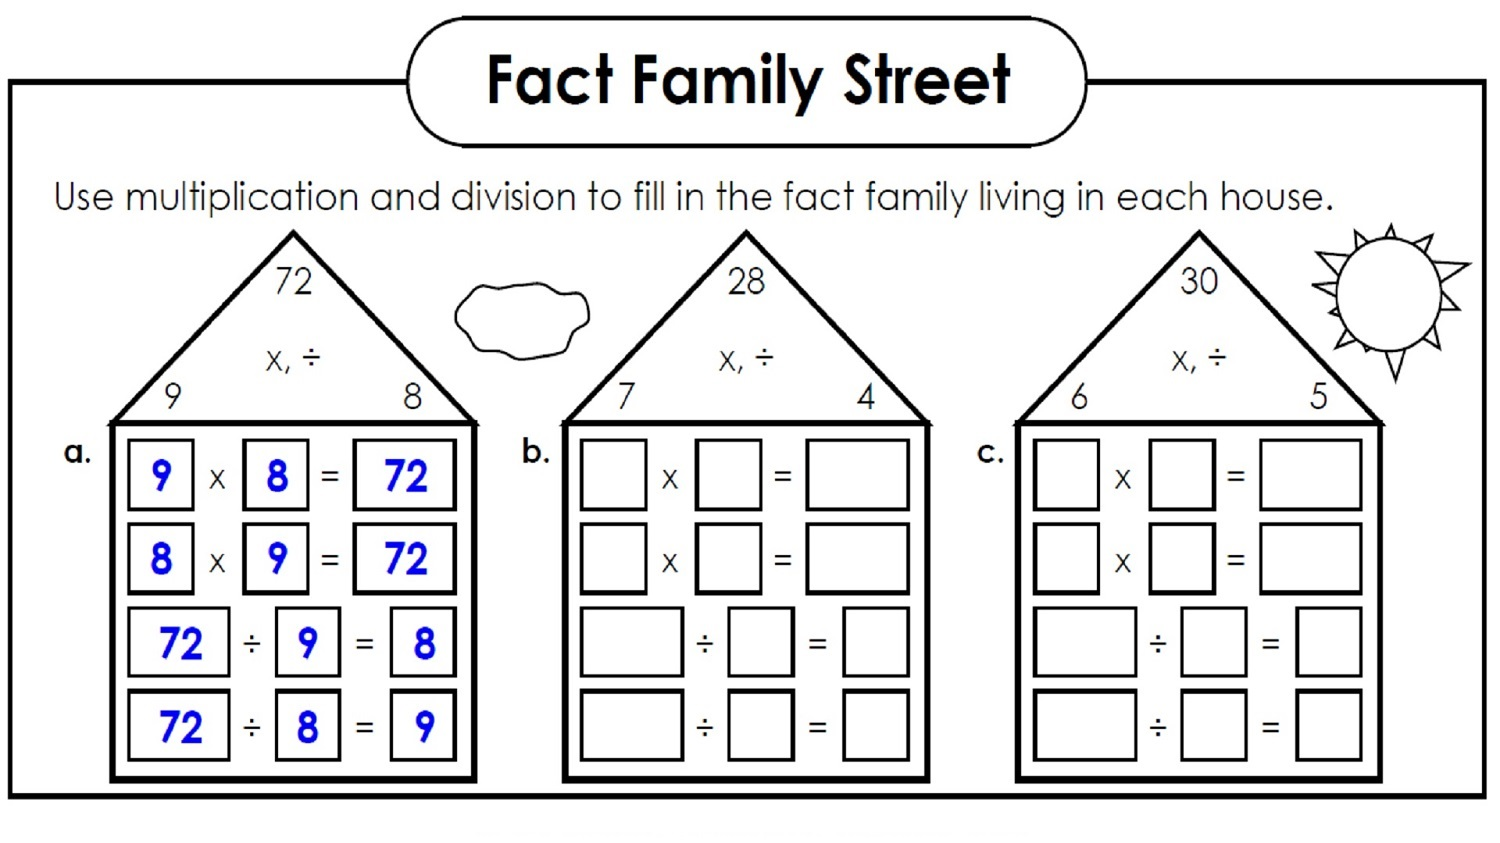 Workbooks multiplication and division facts worksheets : Fact Family Worksheets to Print | Activity Shelter